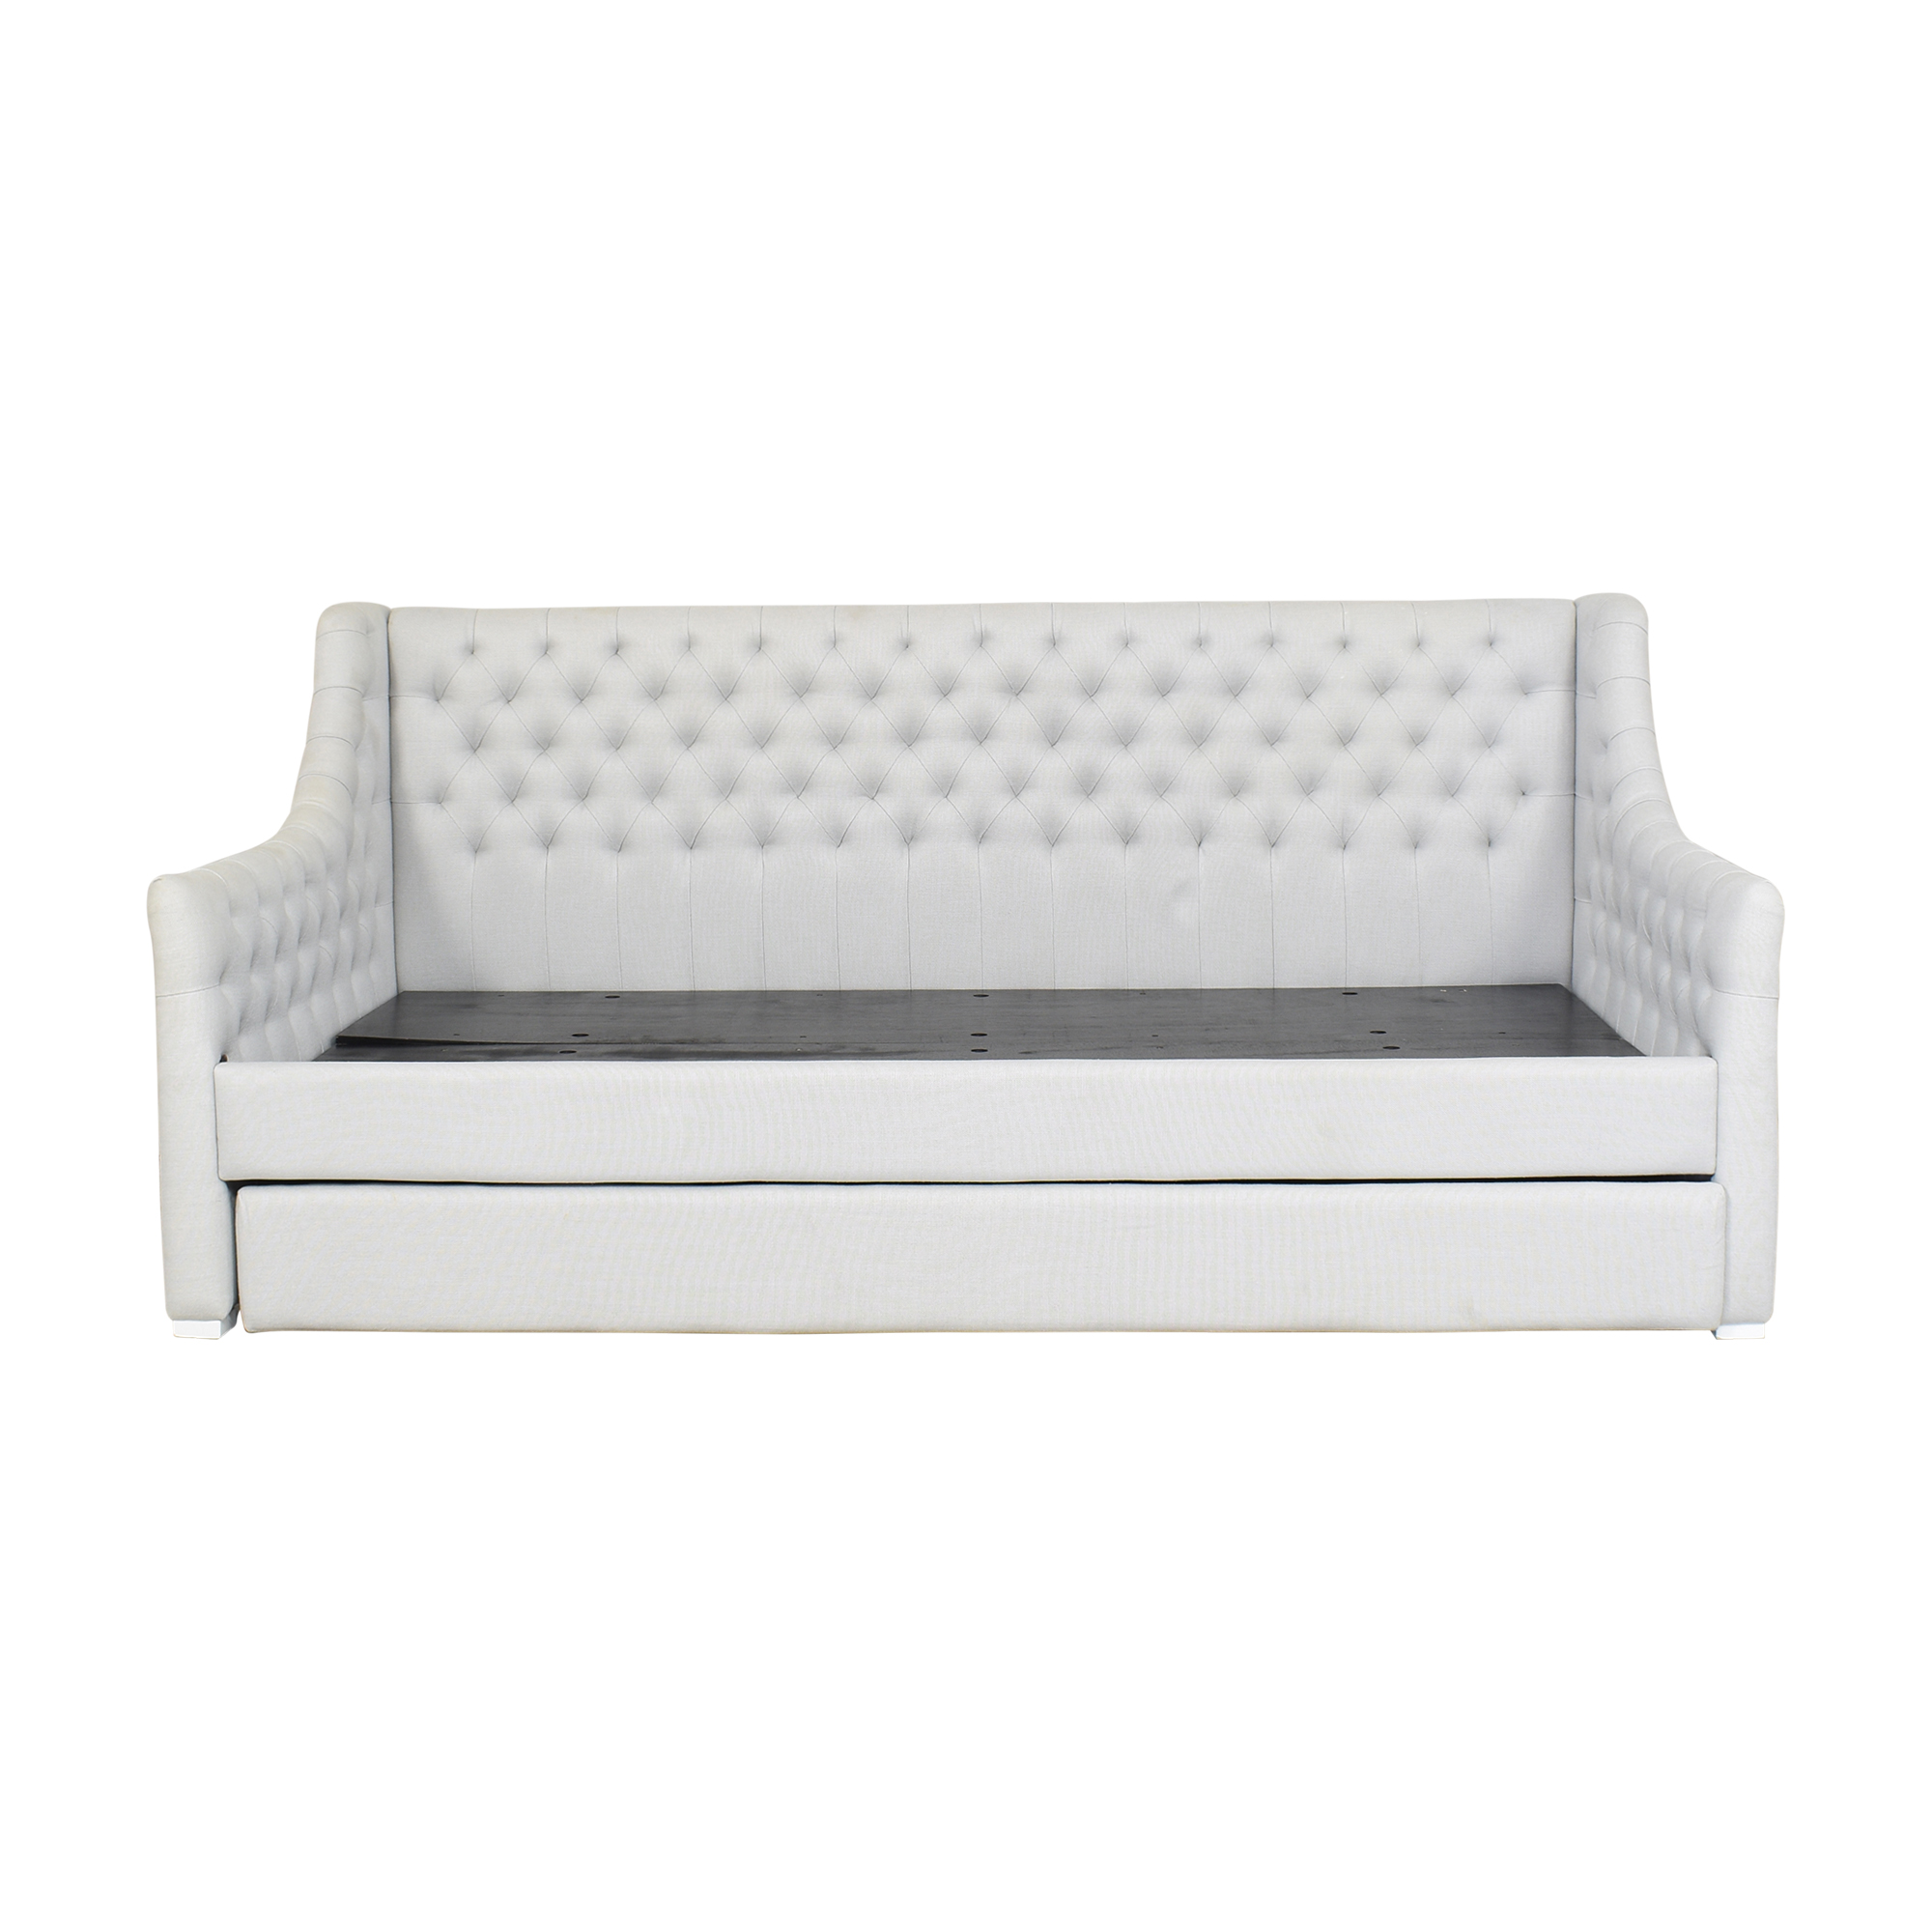 RH Baby & Child RH Baby & Child Devyn Tufted Twin Daybed with Trundle ma